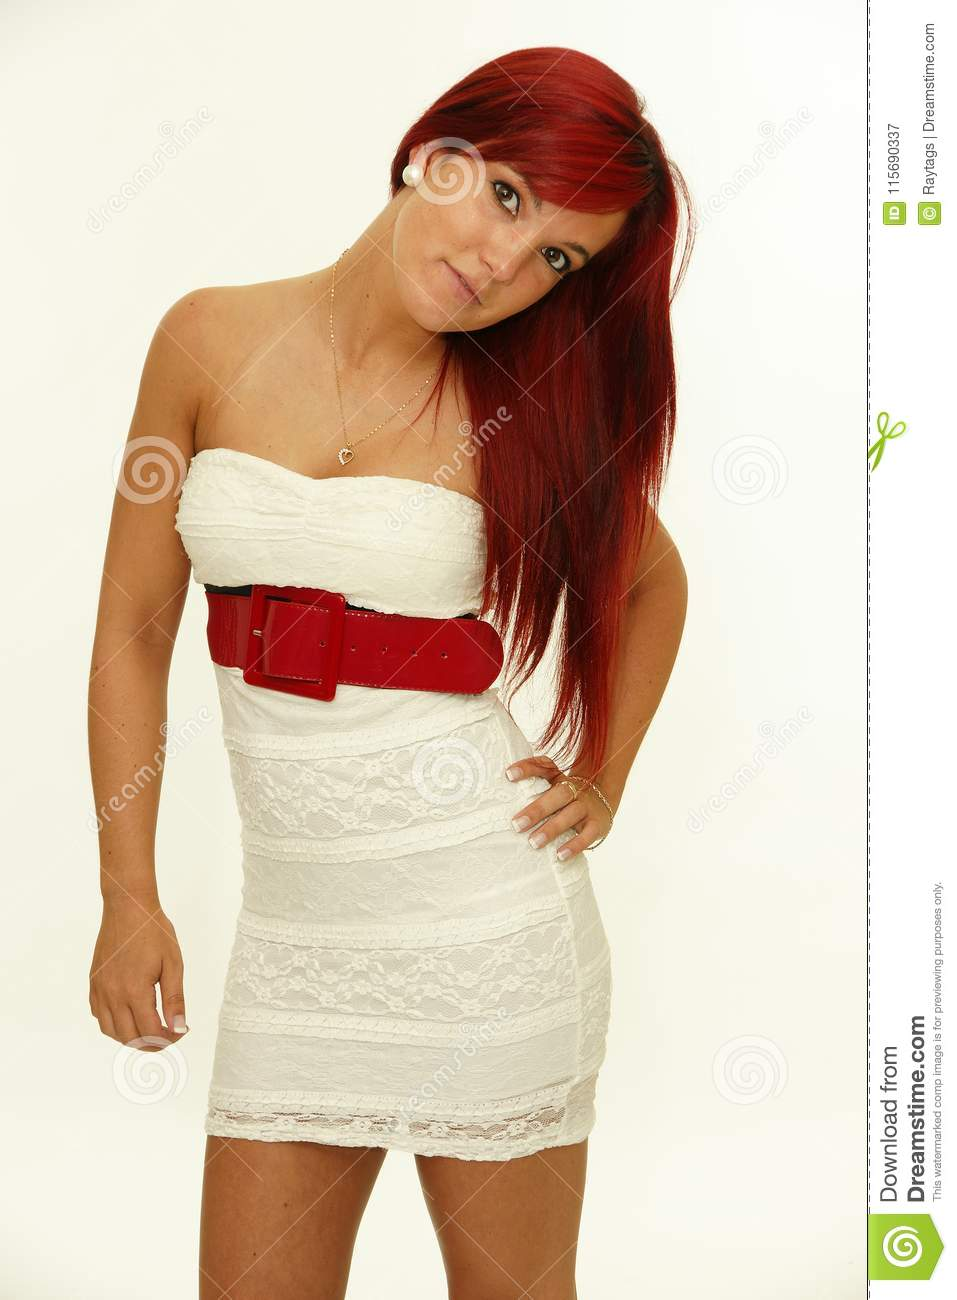 Redhead woman posing apologise, but